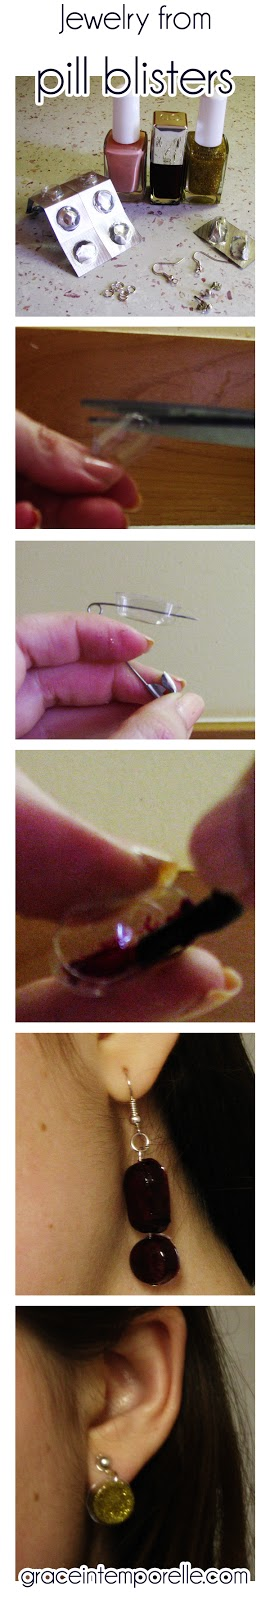 Grace Intemporelle by Natalia: How to make eco earrings from recycled pill blisters and nail polish